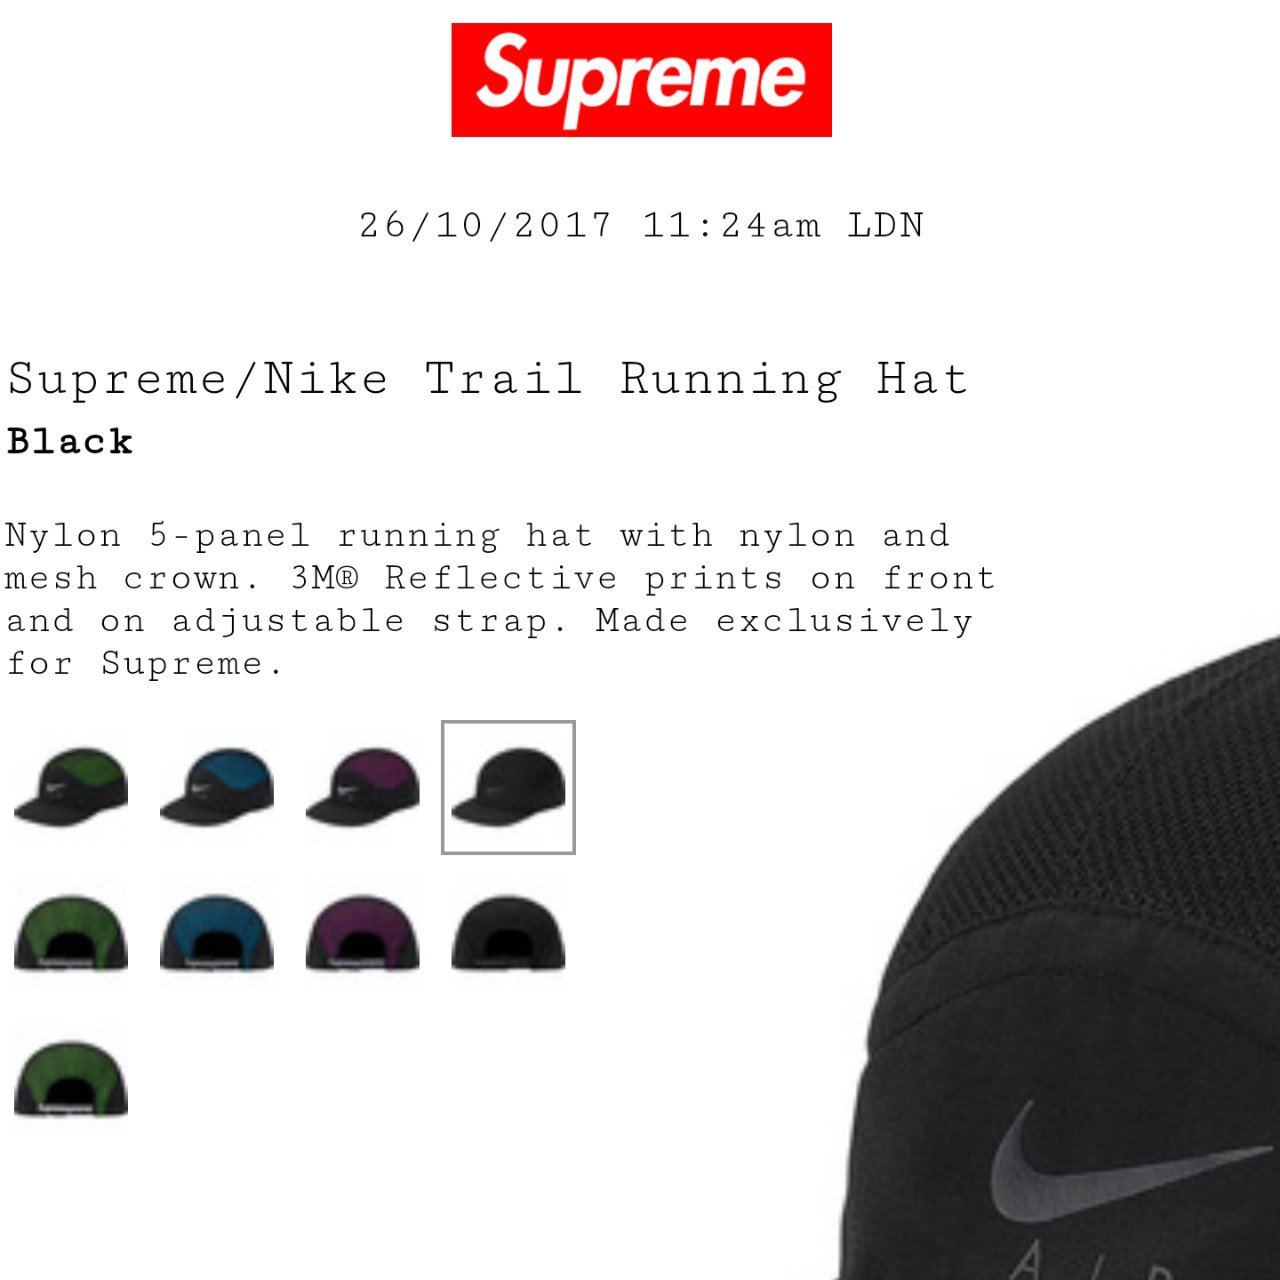 Supreme Nike Trail Running Hat Black. Dropped today and was - Depop a3e440b70c4f